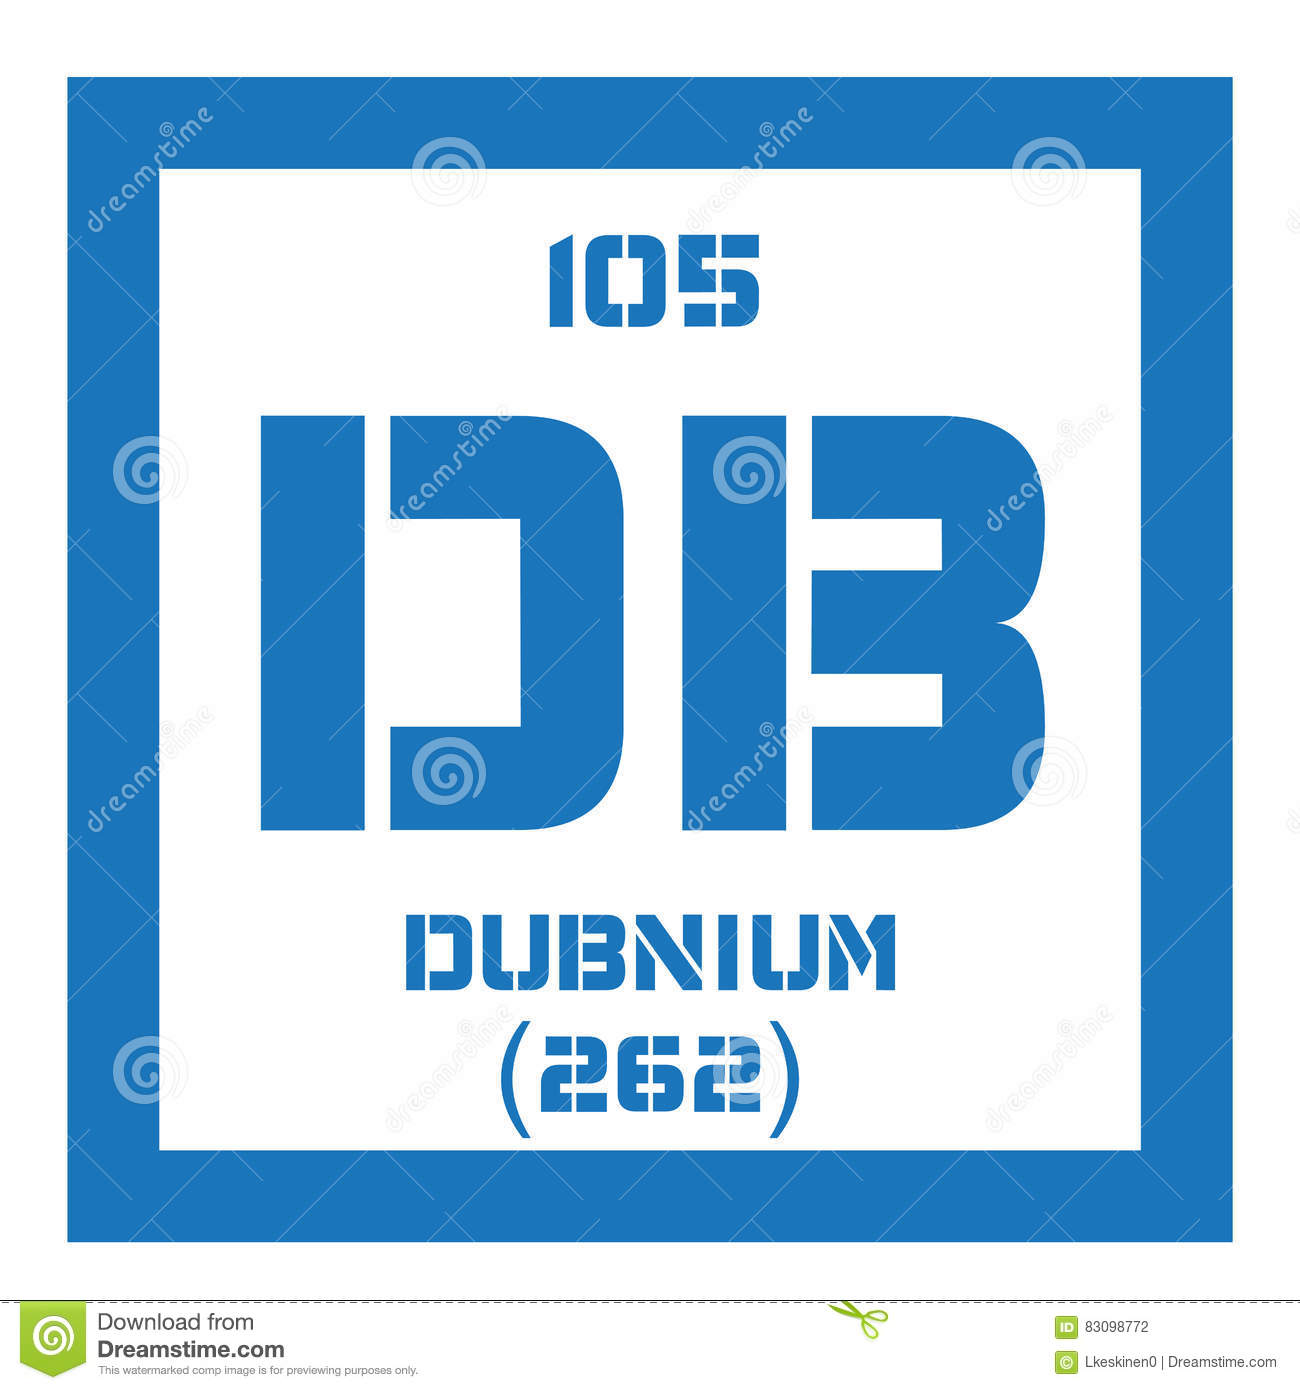 Dubnium chemical element stock vector illustration of element dubnium chemical element radioactive synthetic element colored icon with atomic number and atomic weight chemical element of periodic table urtaz Images